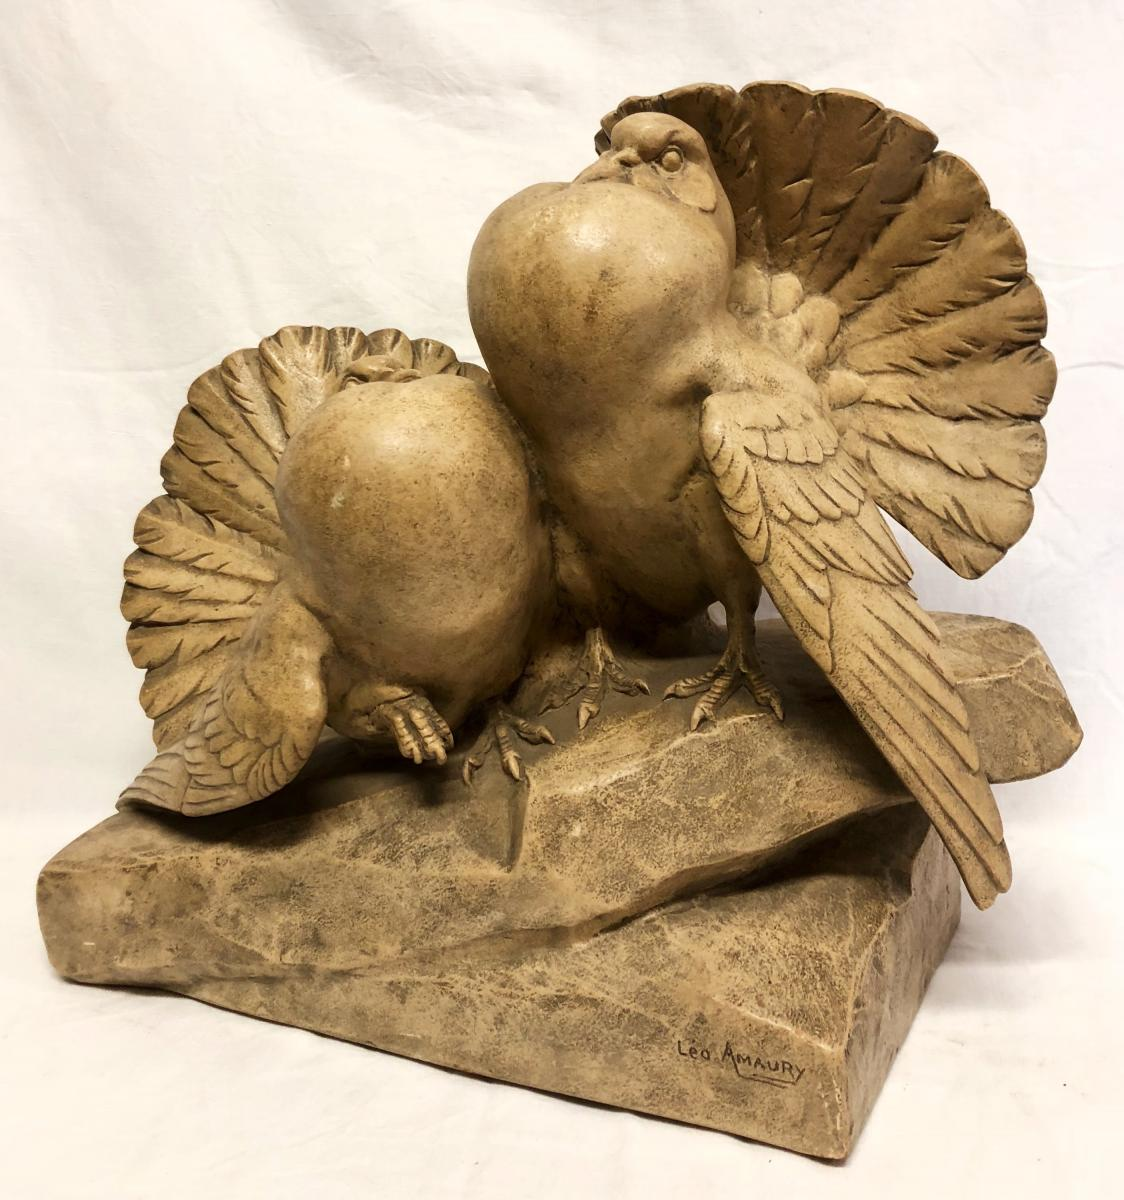 Couple Of Piggers In Terra Cotta Signed By Leo Amaury-photo-4